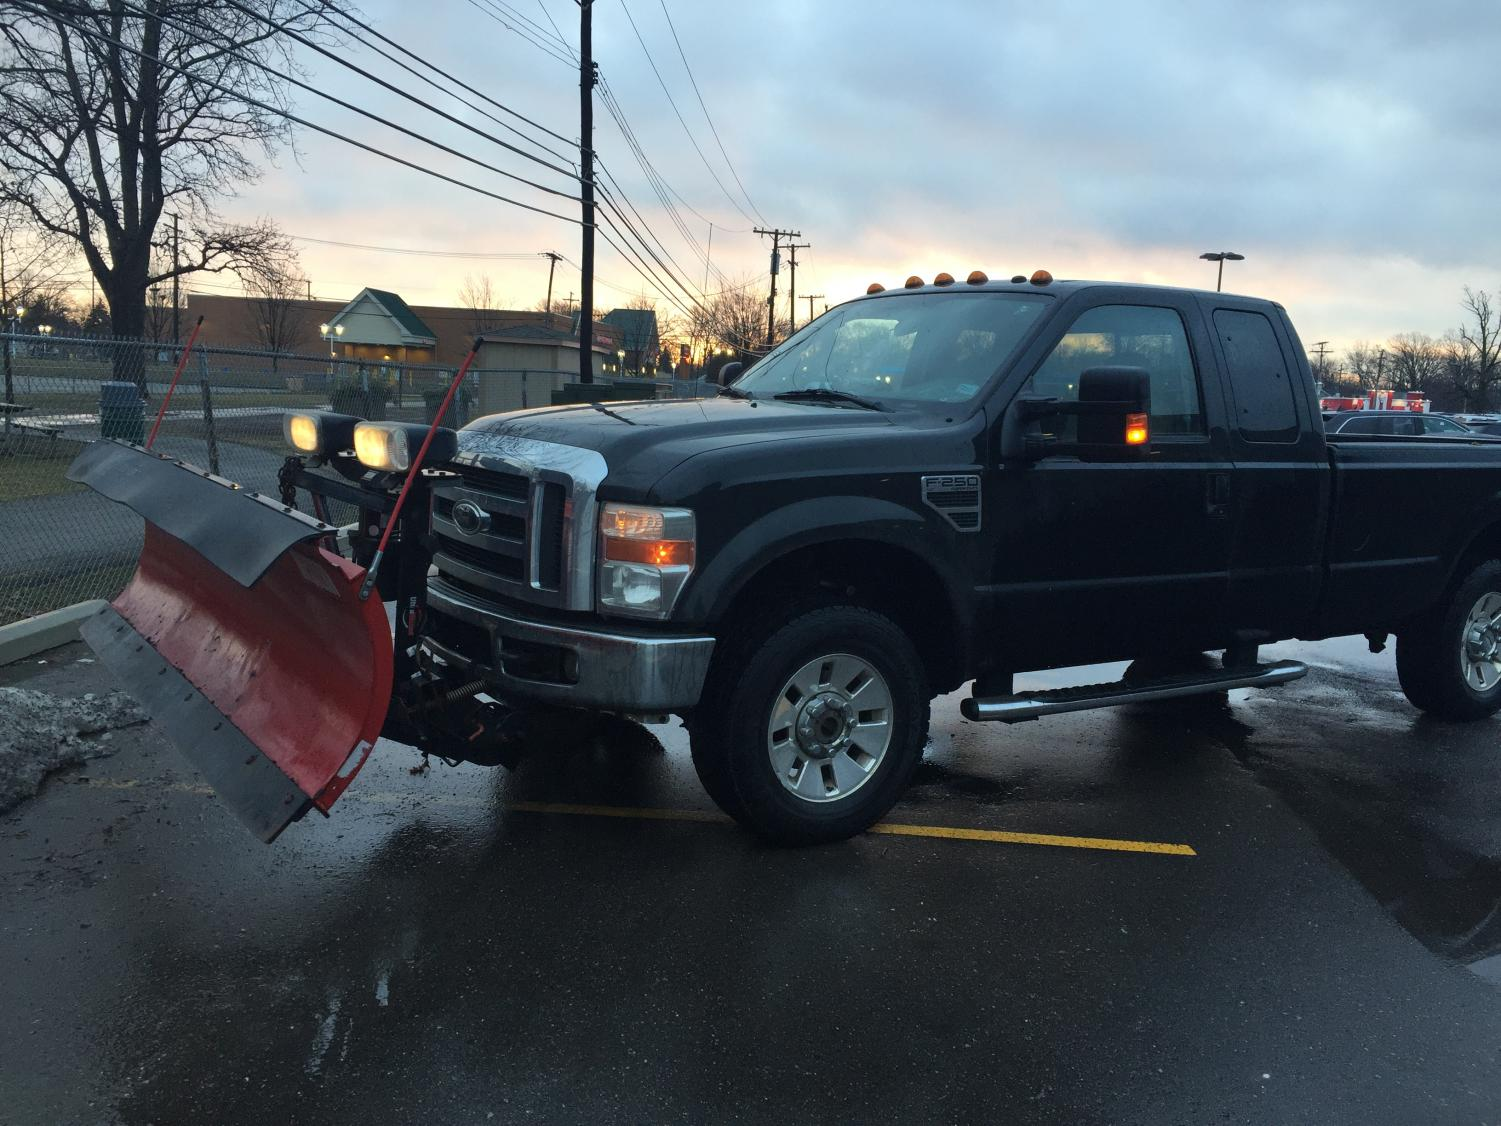 Morgan Mathews is the owner of a landscaping business which plows snow in the winter with trucks like these. Photo courtesy of Chase Clark '18